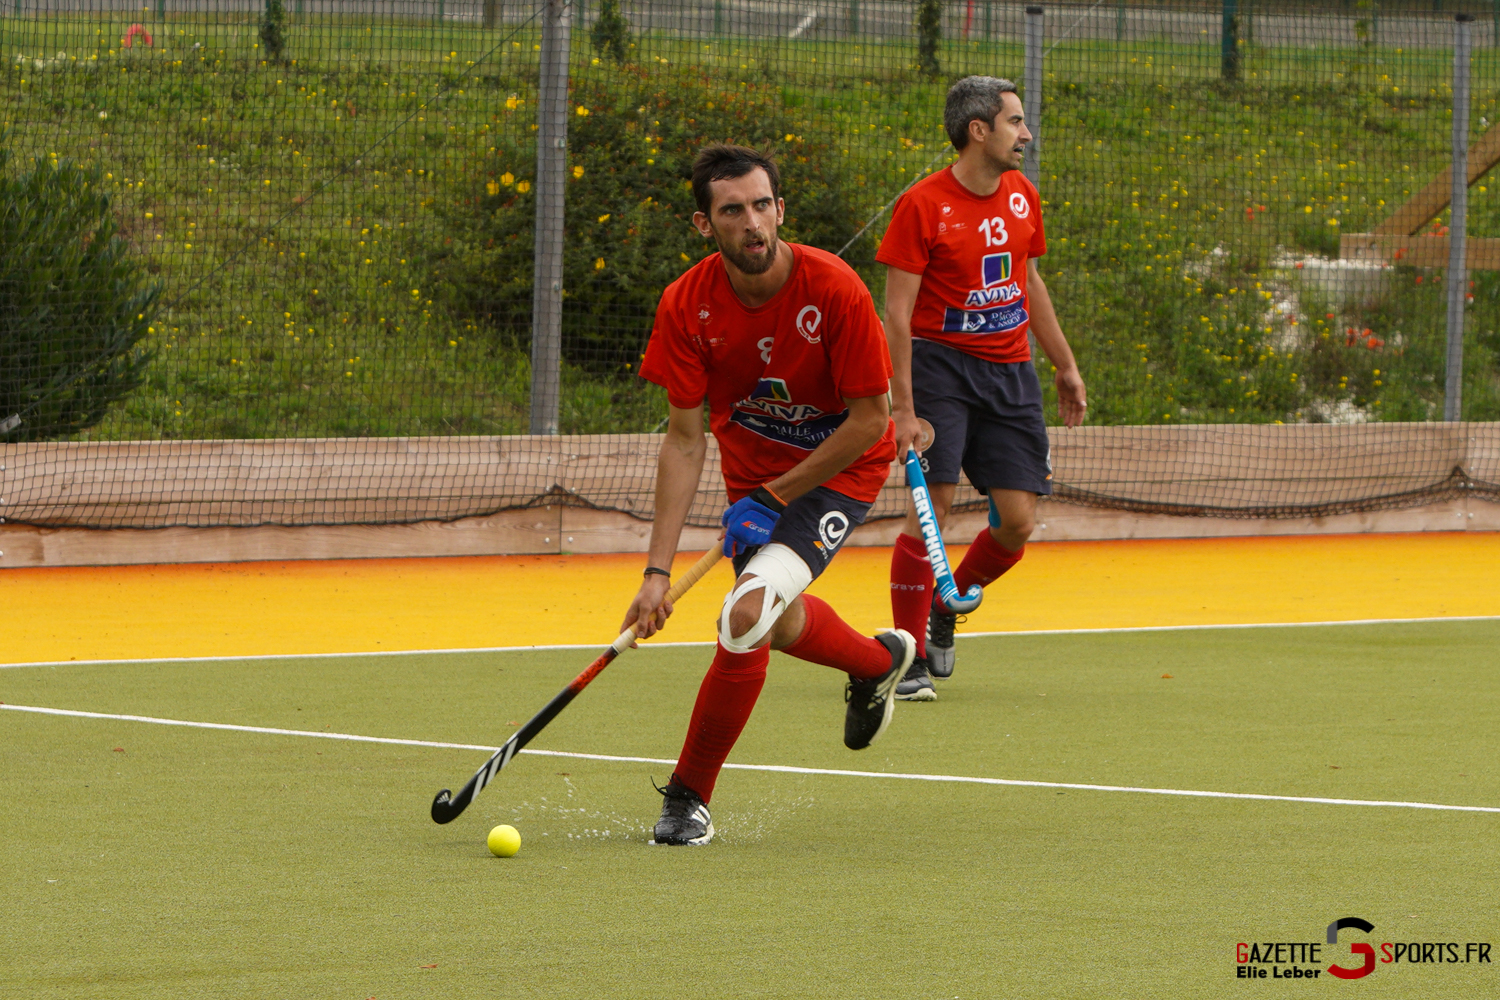 PHOTOS: The album of the match between ASC field hockey and CA Montrouge